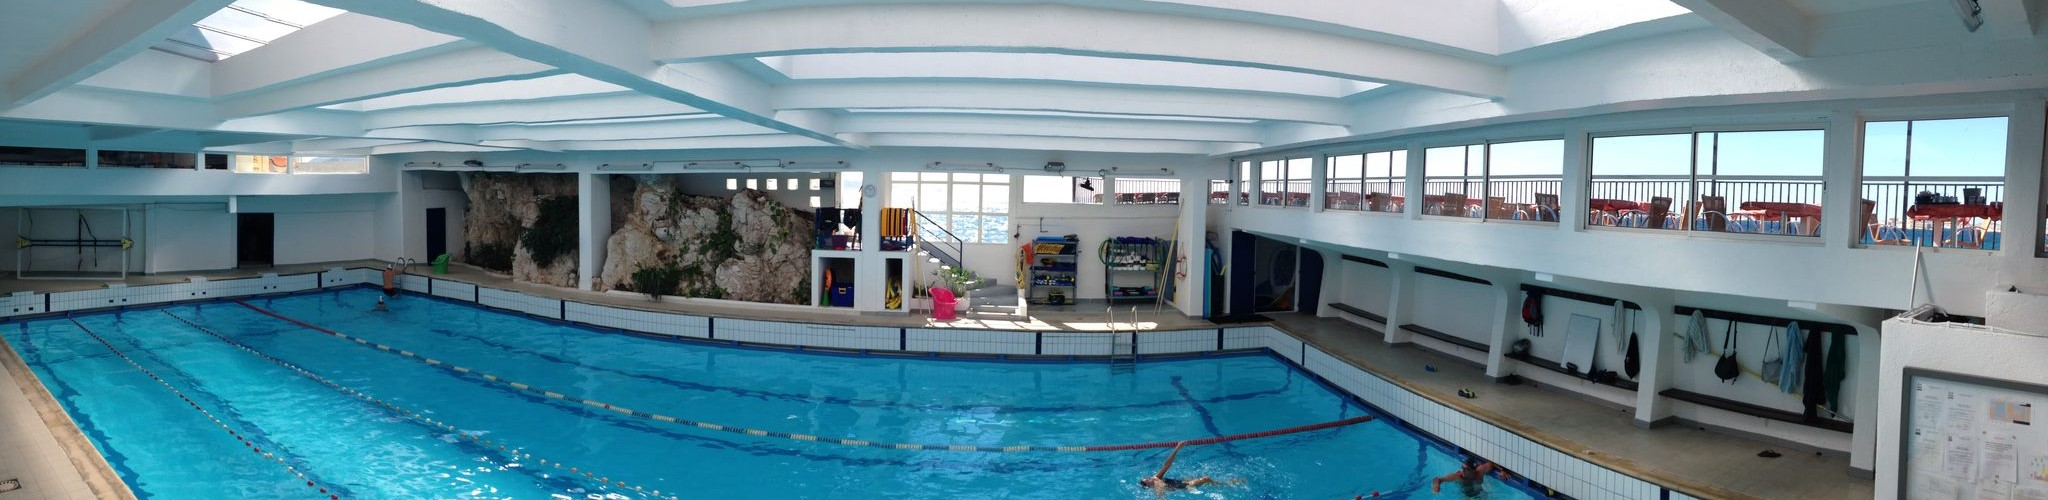 Scc marseille piscine des dauphins un club sportif for Club piscine boucherville telephone